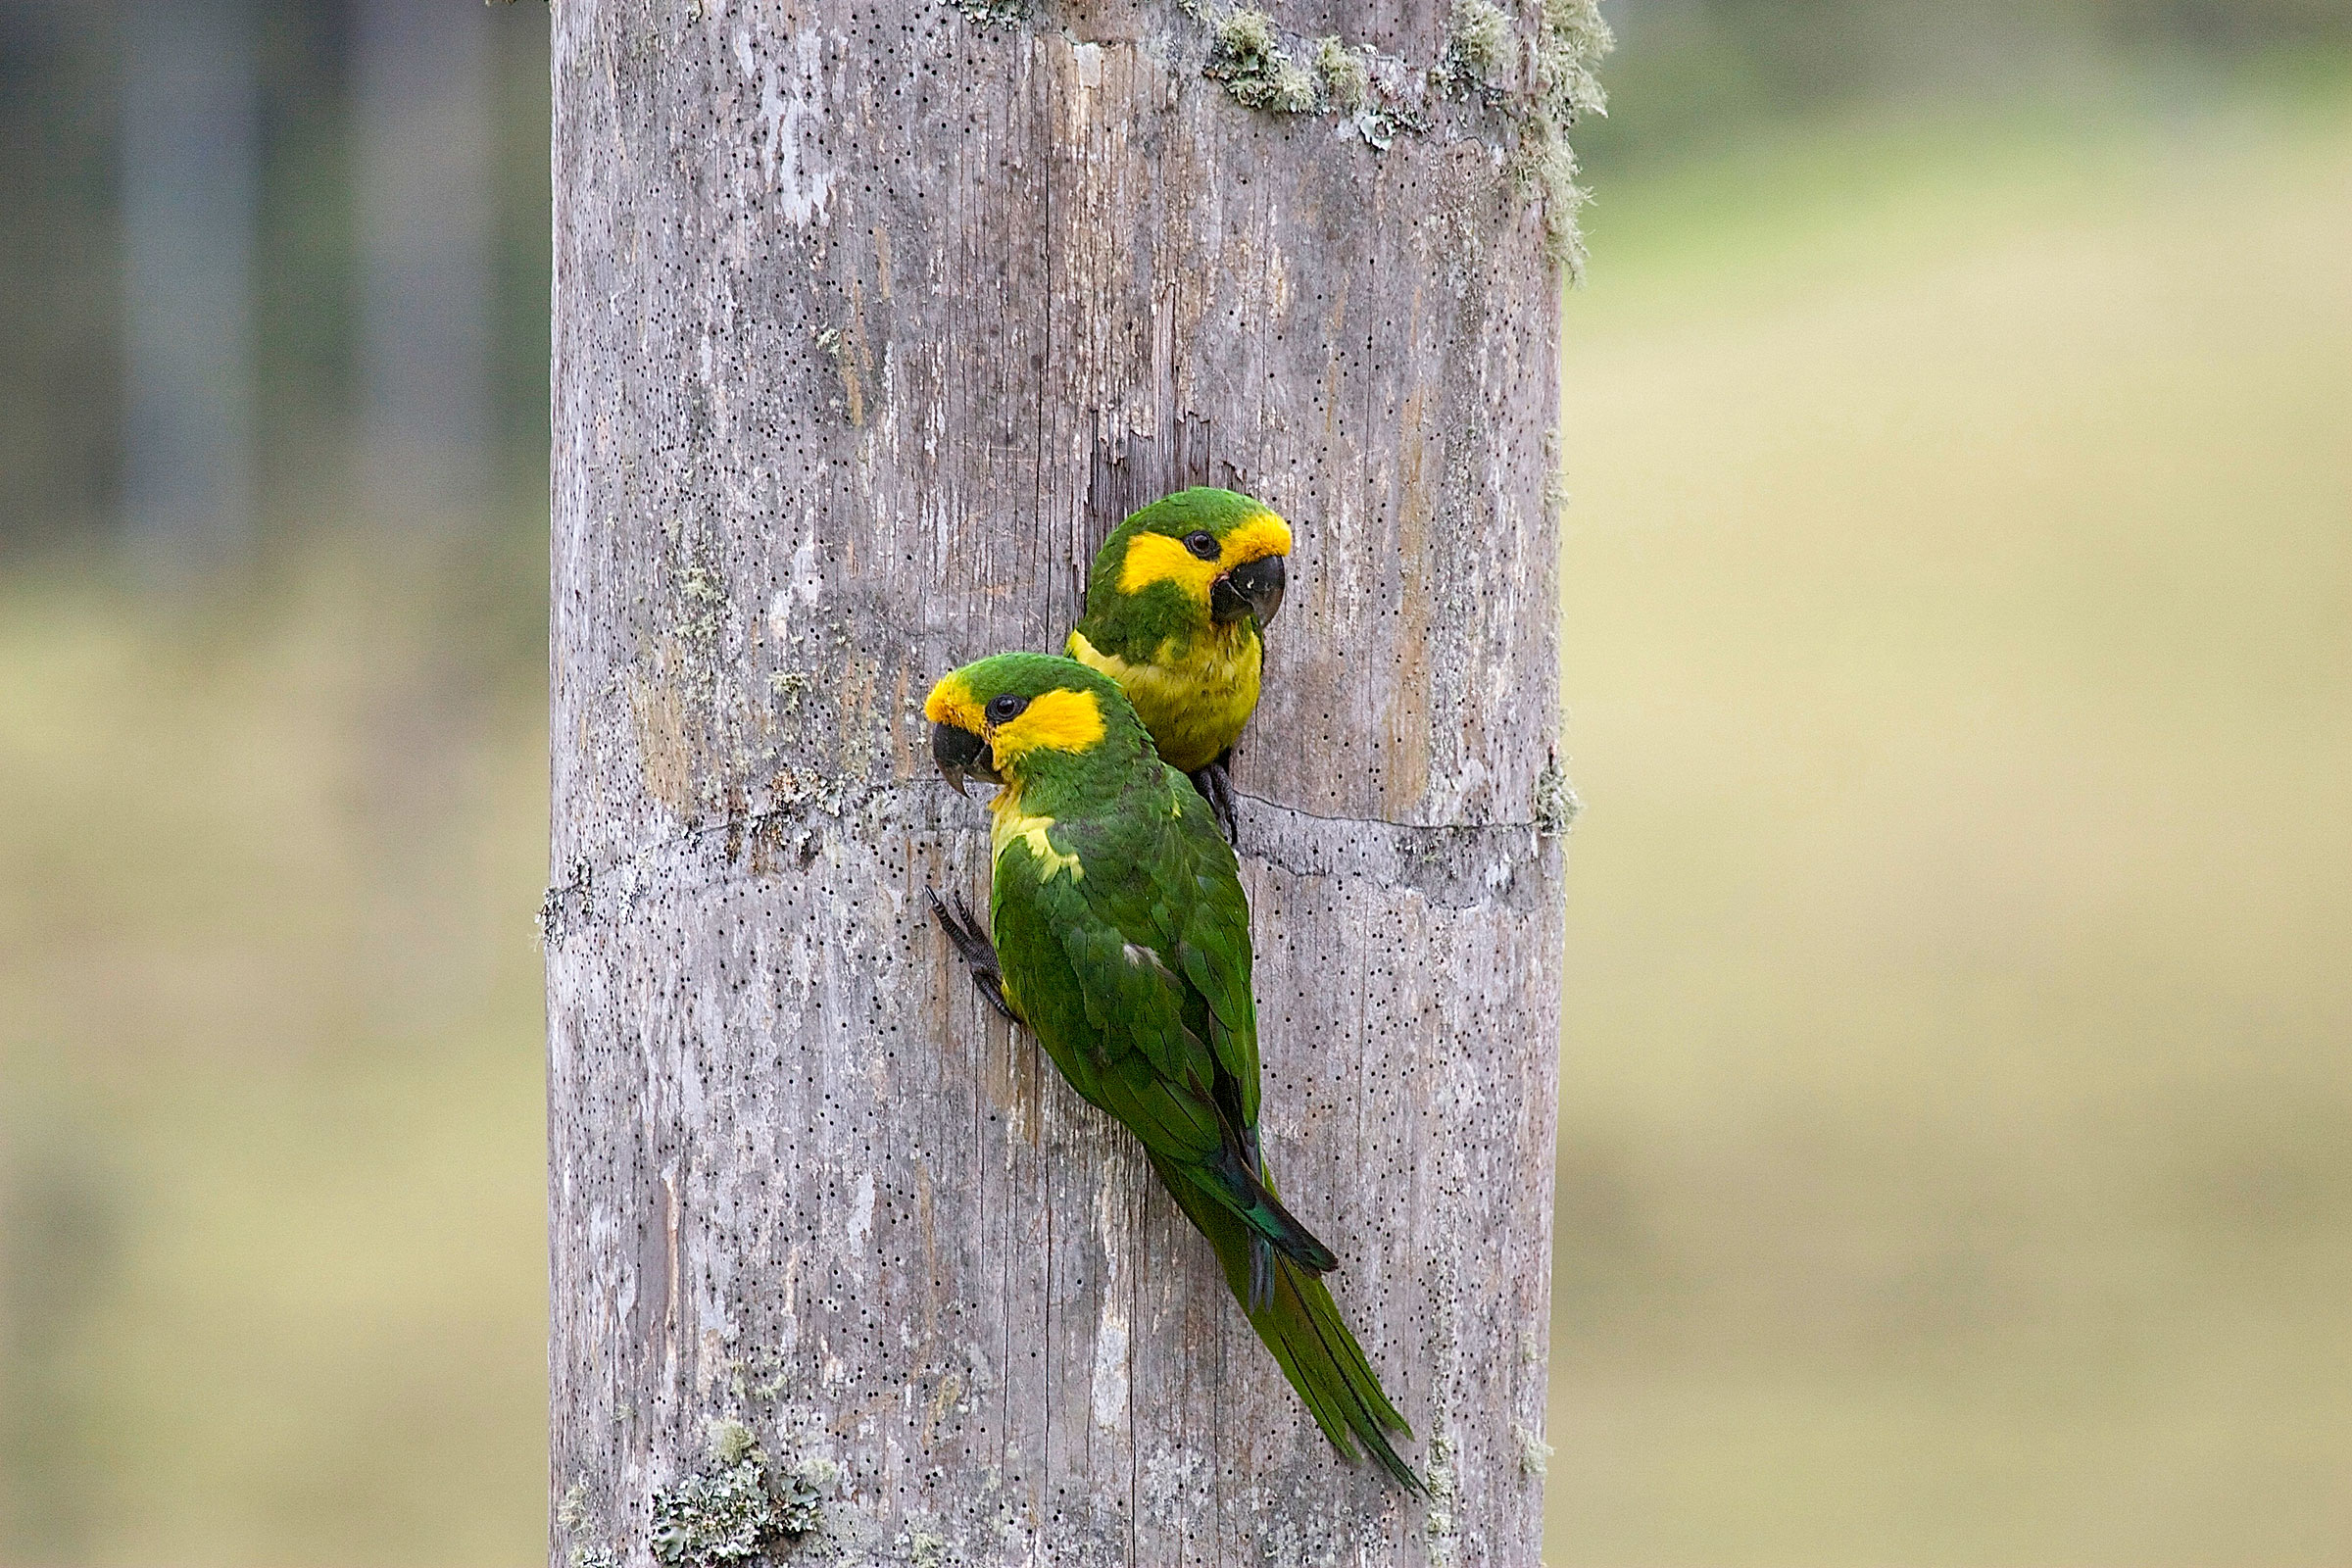 Yellow-eared Parrots in the cavity of a Quindío wax palm. Benjamin Freeman